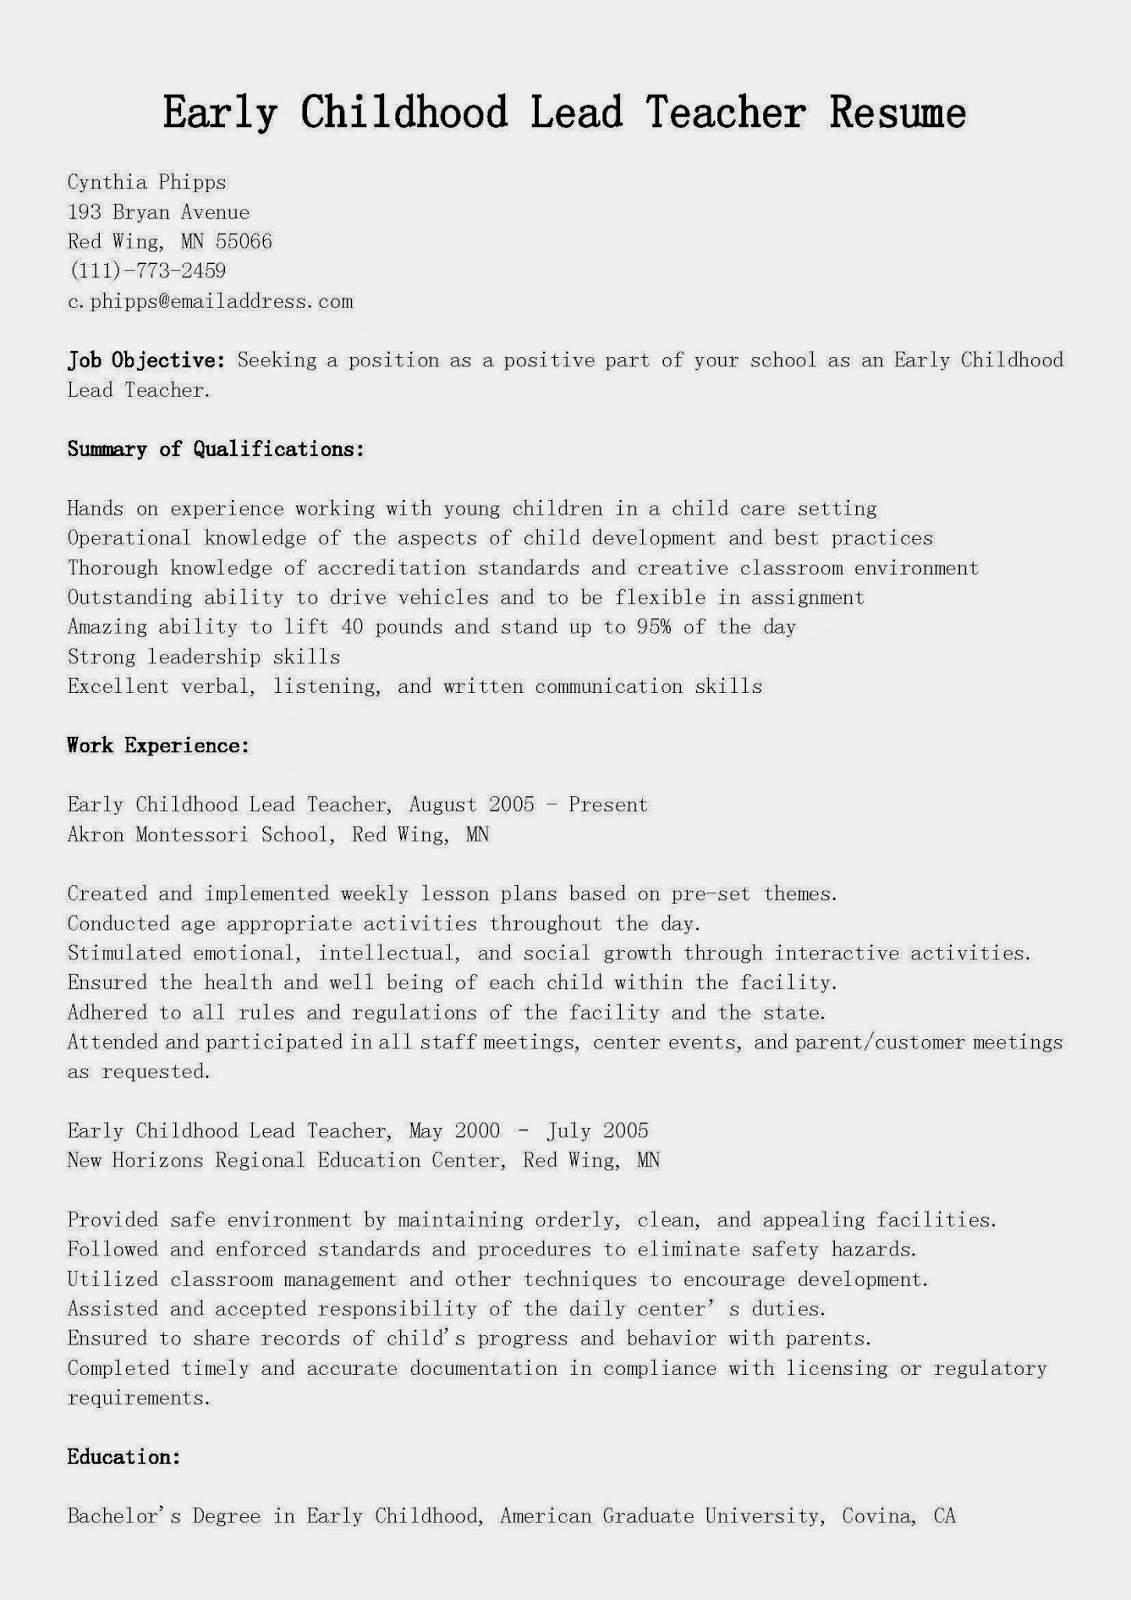 Early Childhood Assistant Cover Letter | Founders Day Student Essay ...